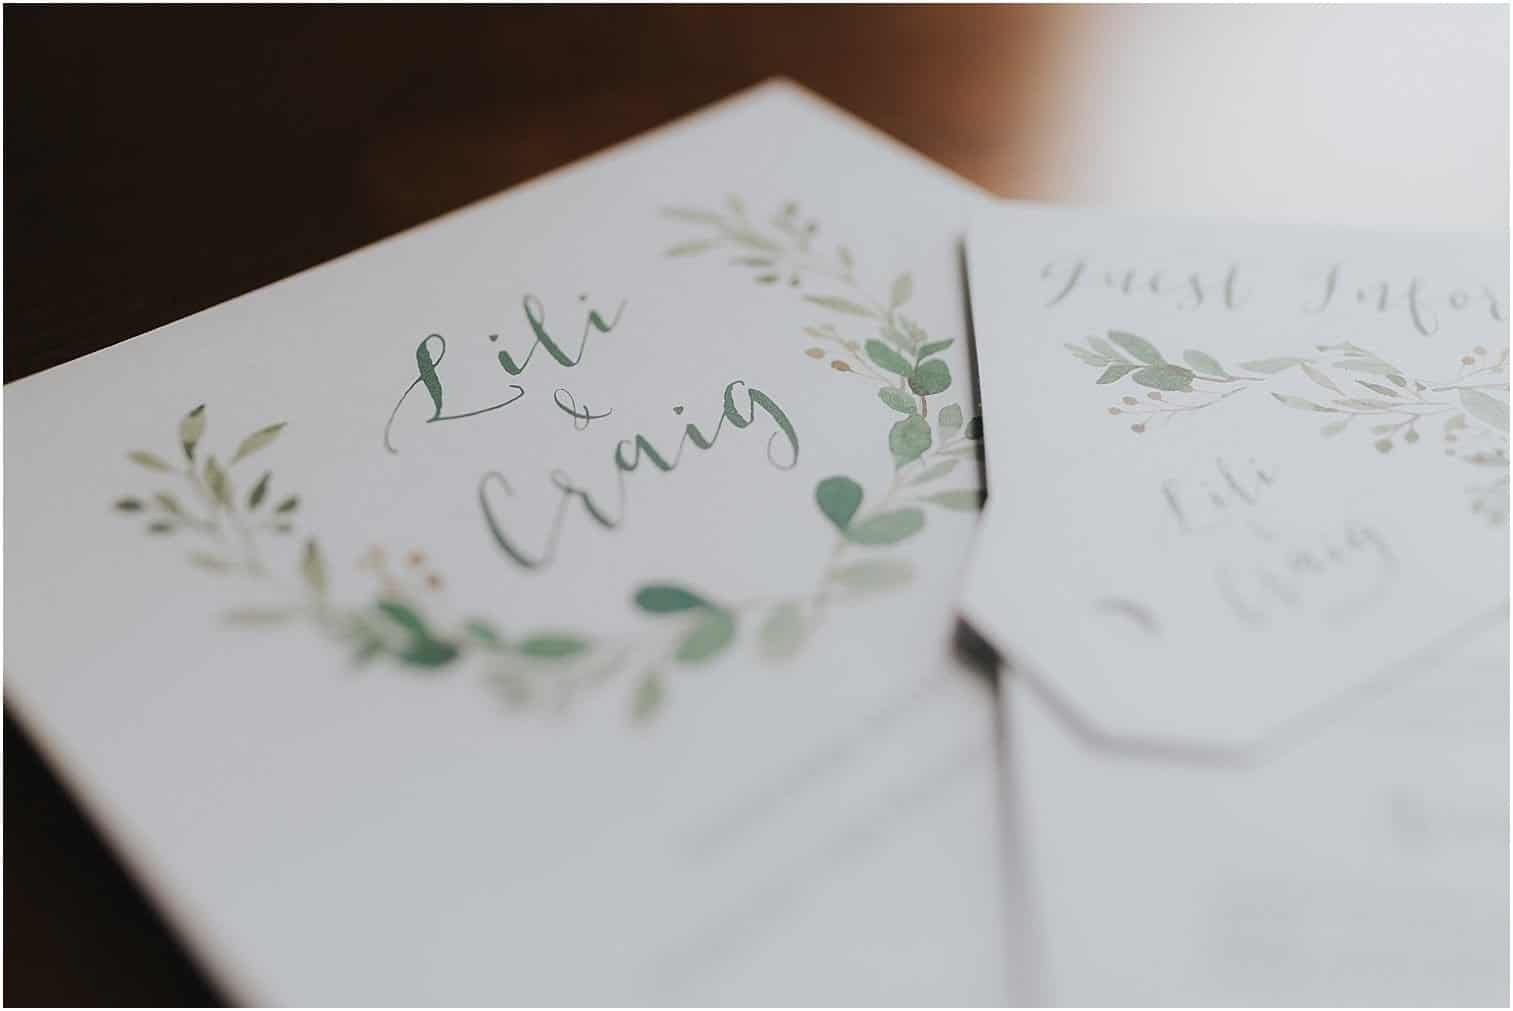 Wedding invites which say Lili & Craig